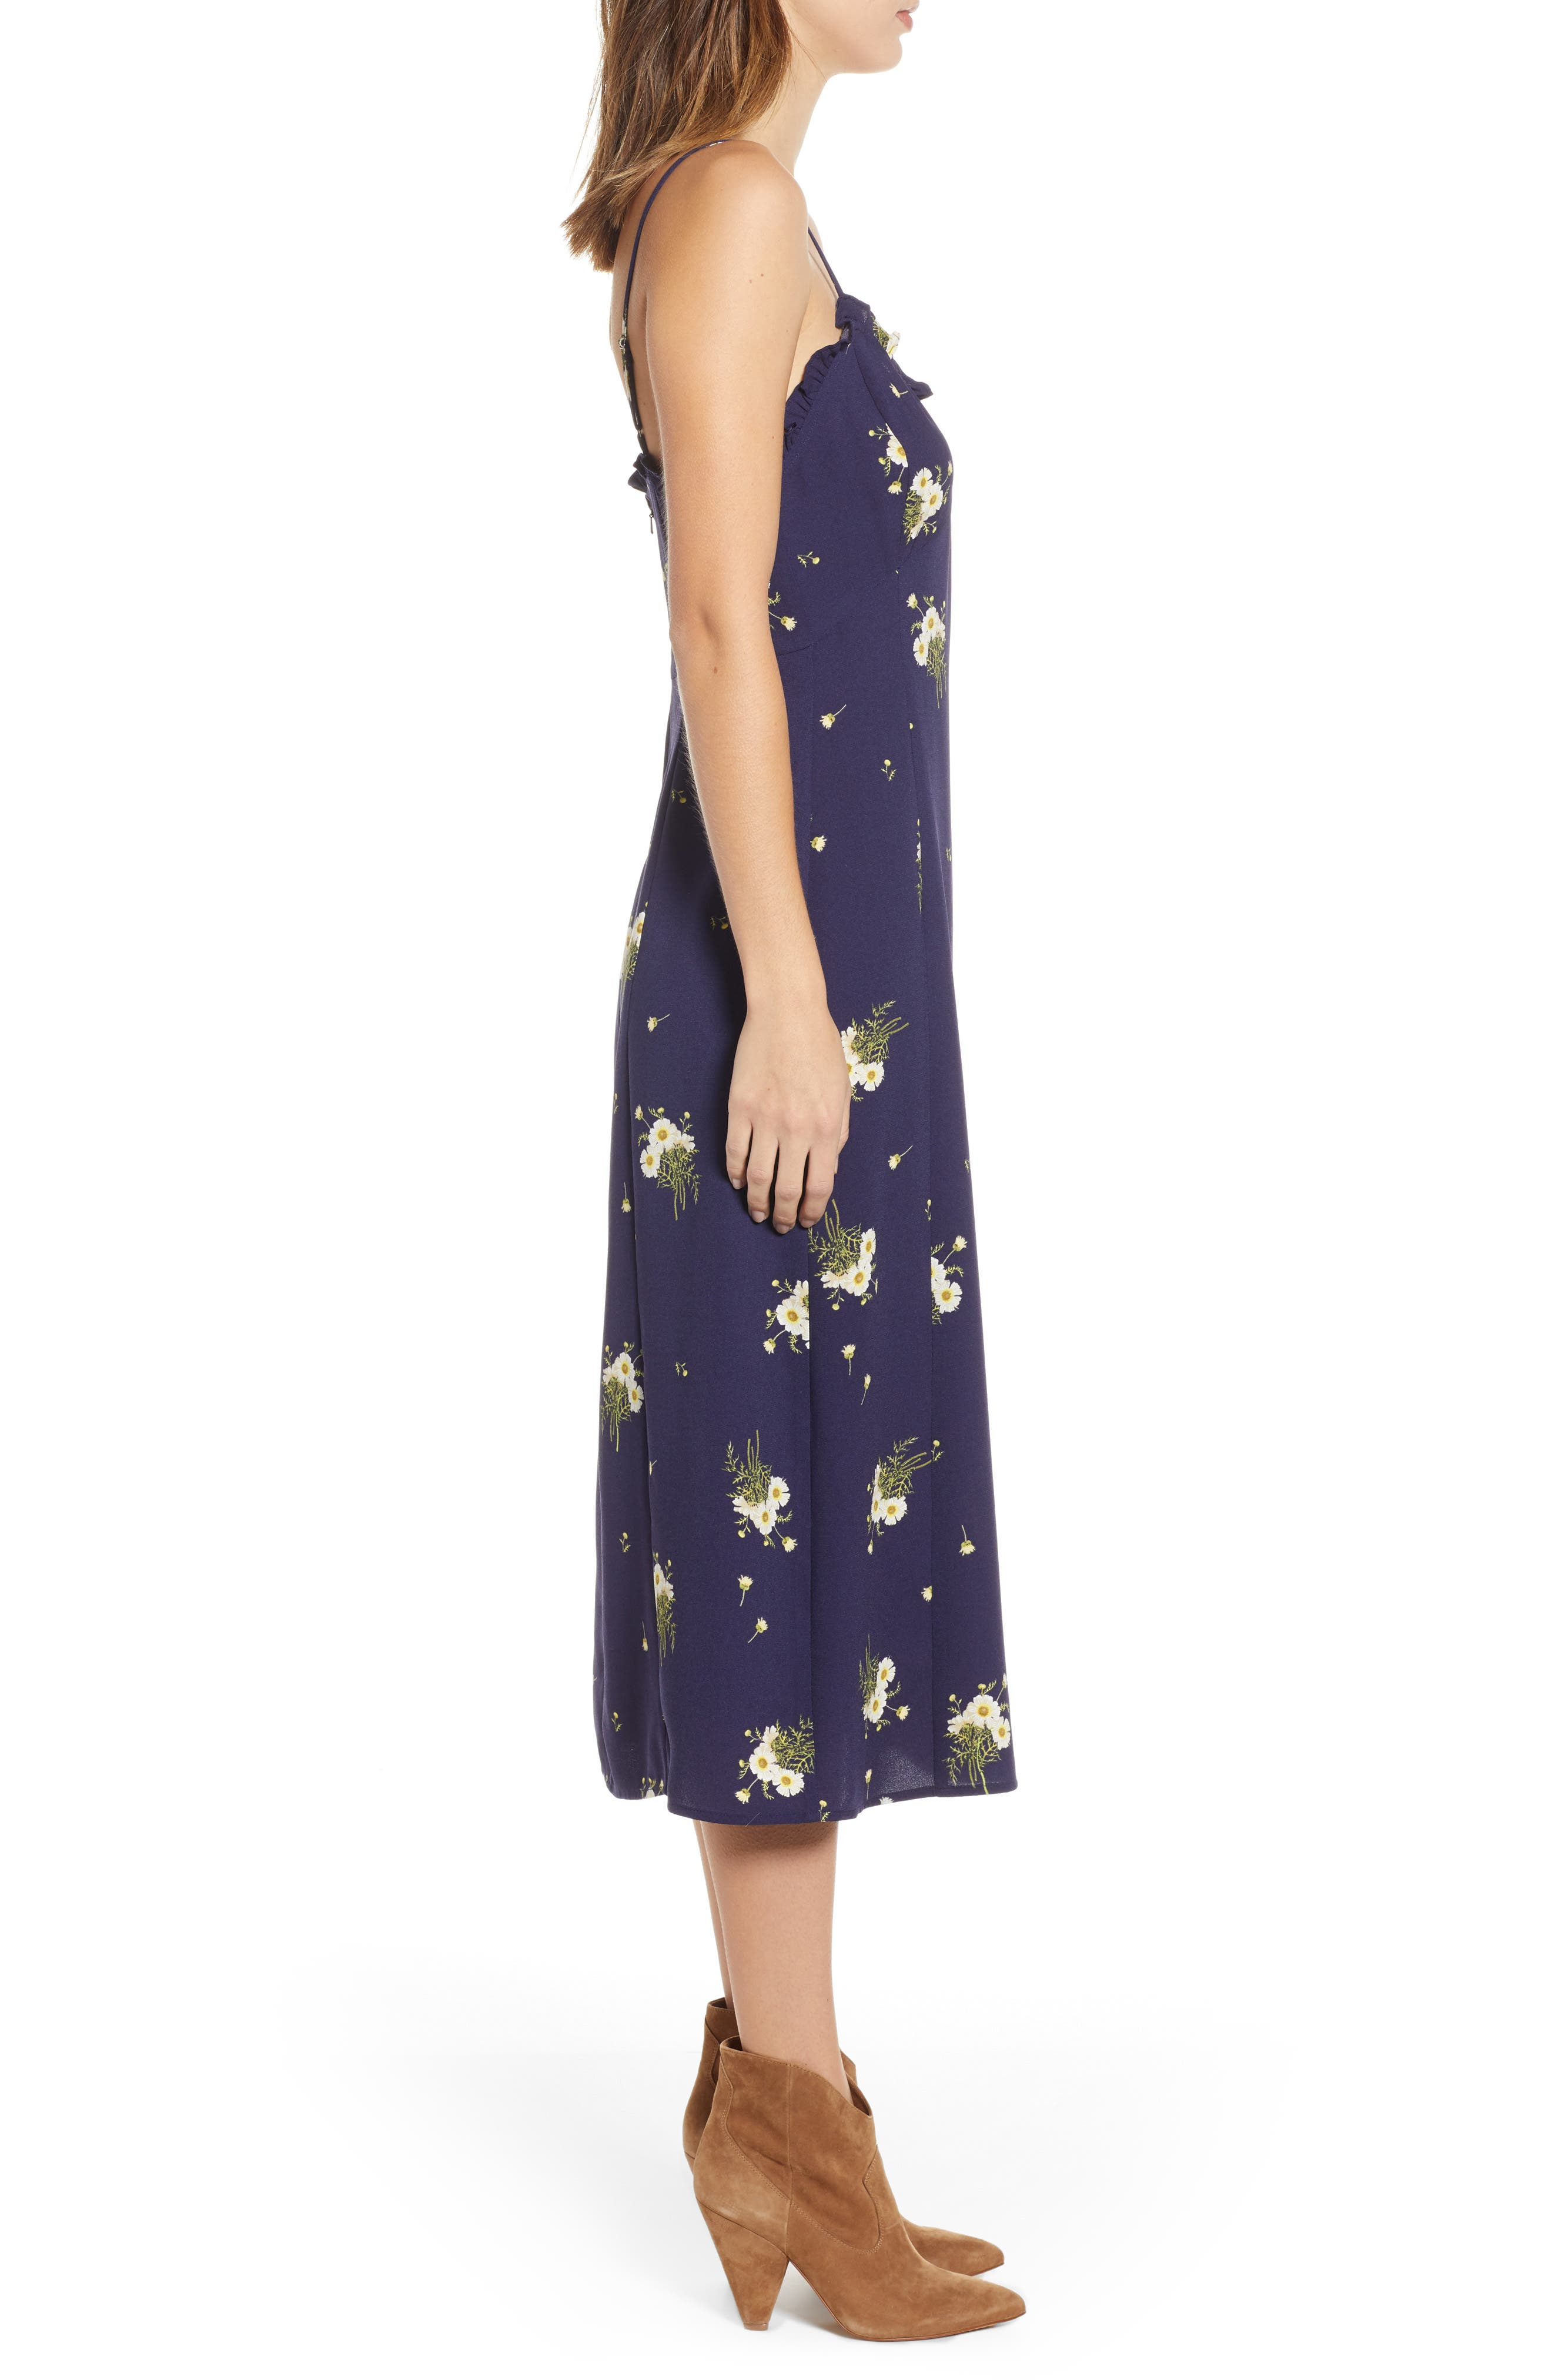 BP., Ruffle Trim Floral Print Midi Dress, Alternate thumbnail 5, color, NAVY EVENING DAISY